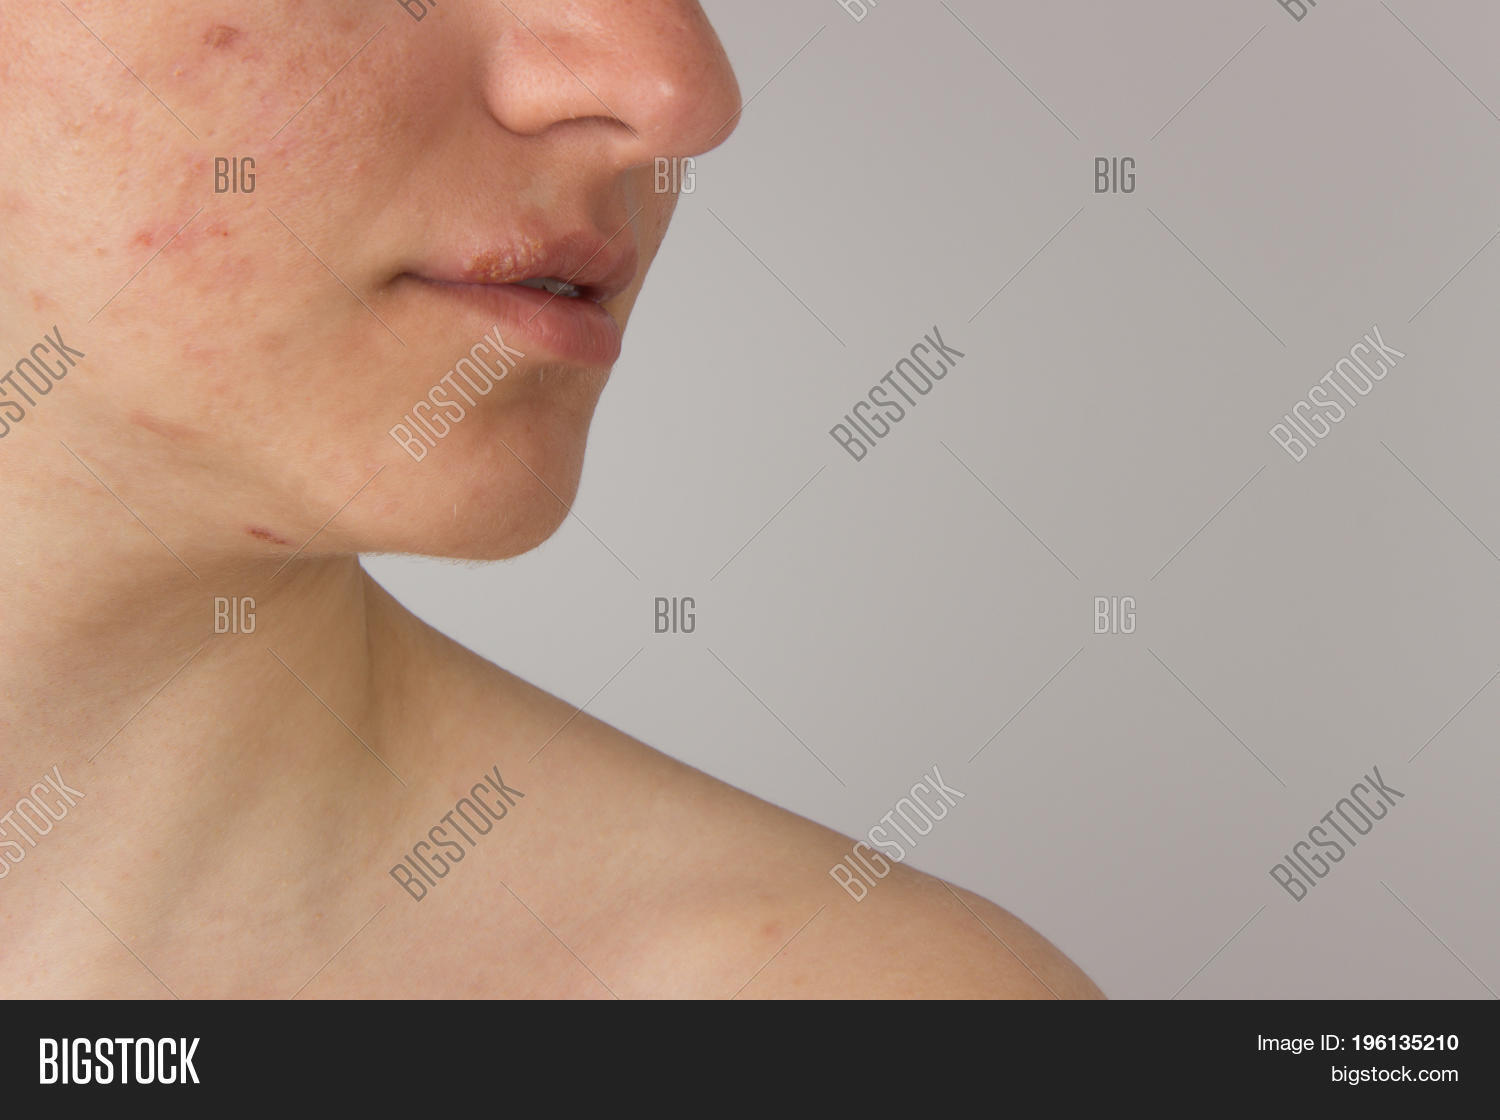 Facial blemishes herpes